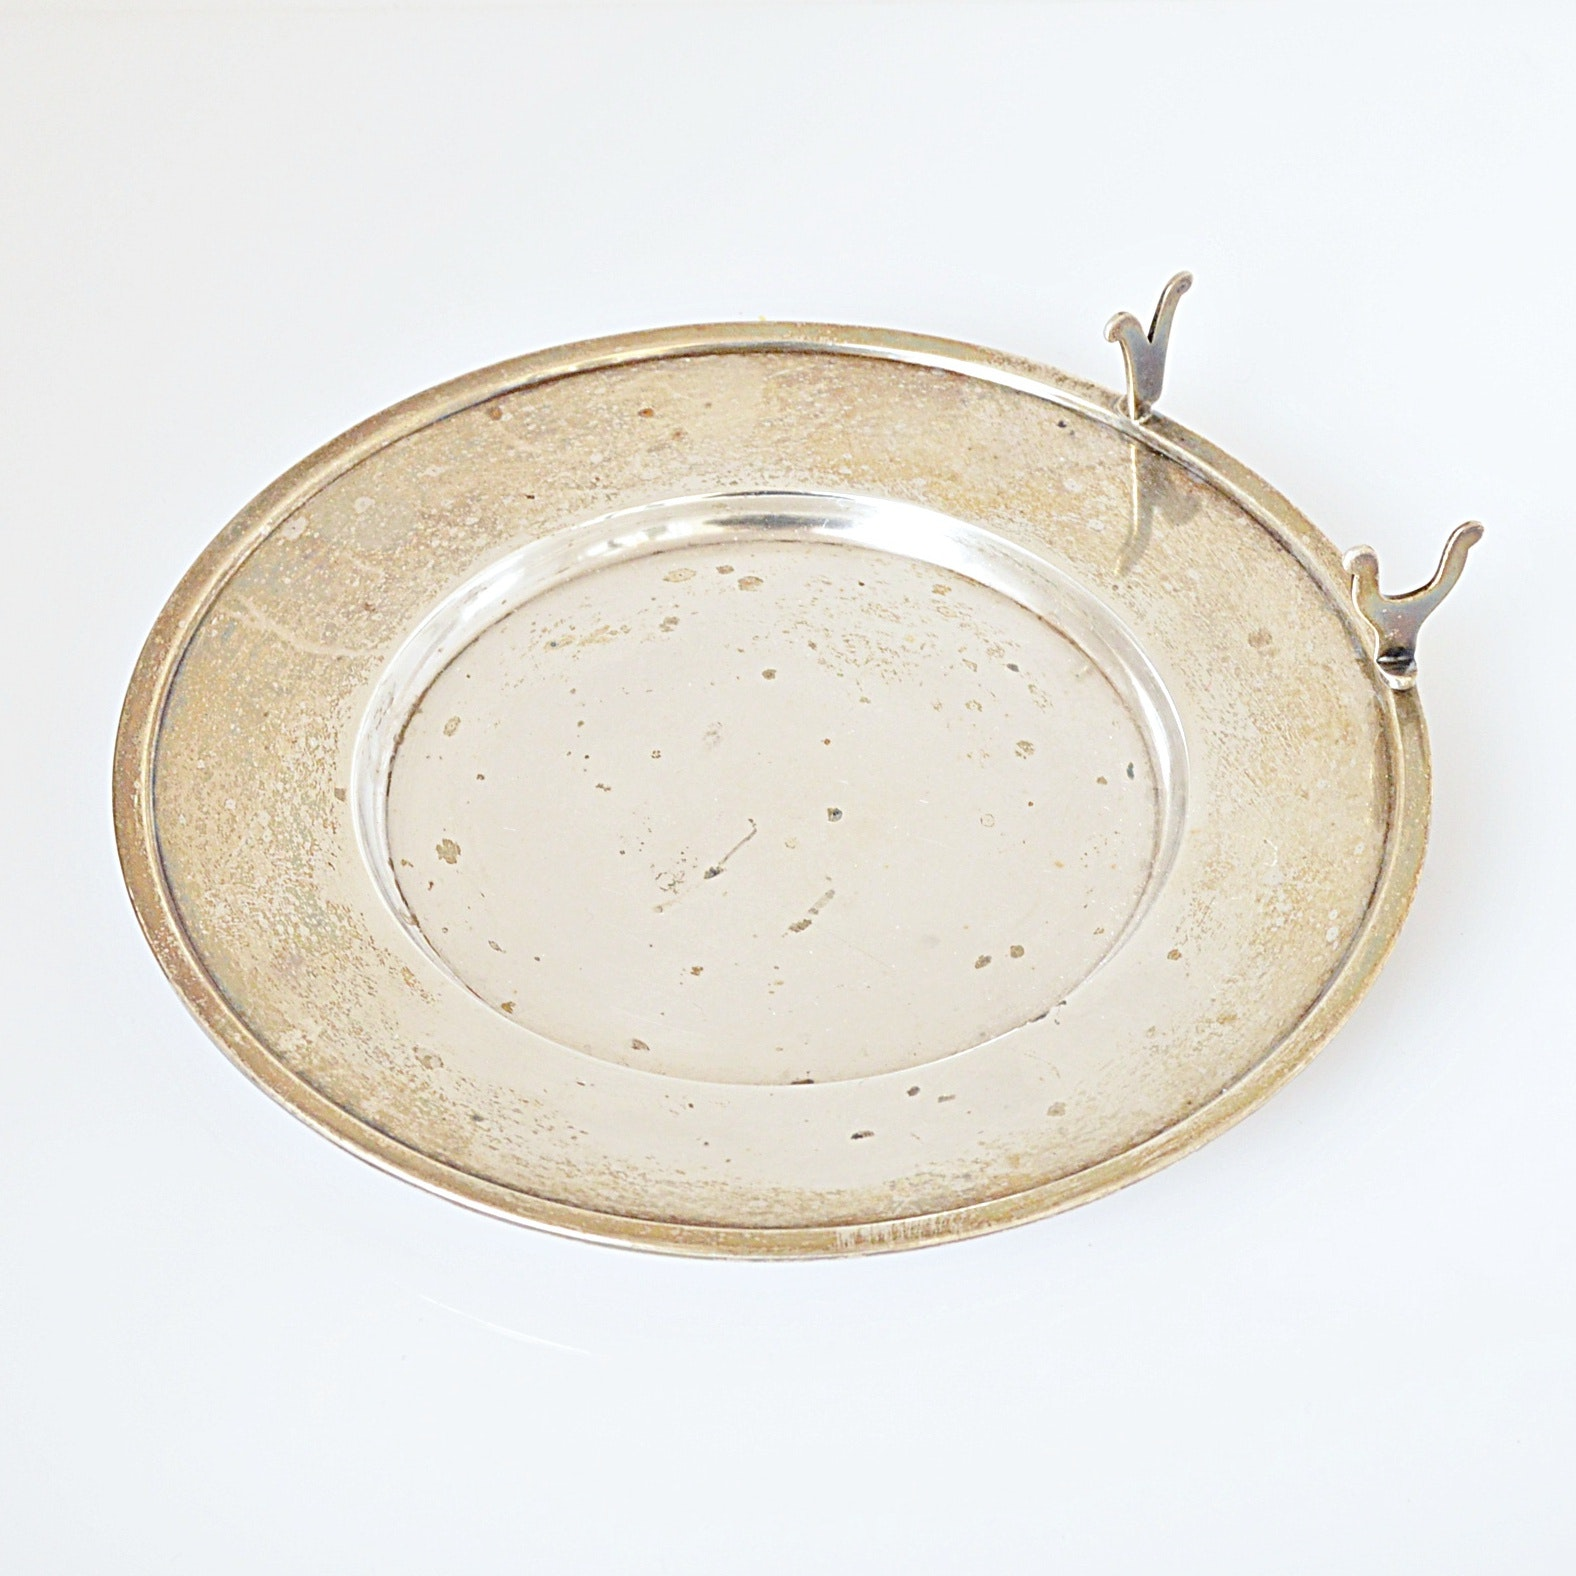 Vintage Webster Co. Sterling Silver Bread and Butter Plate